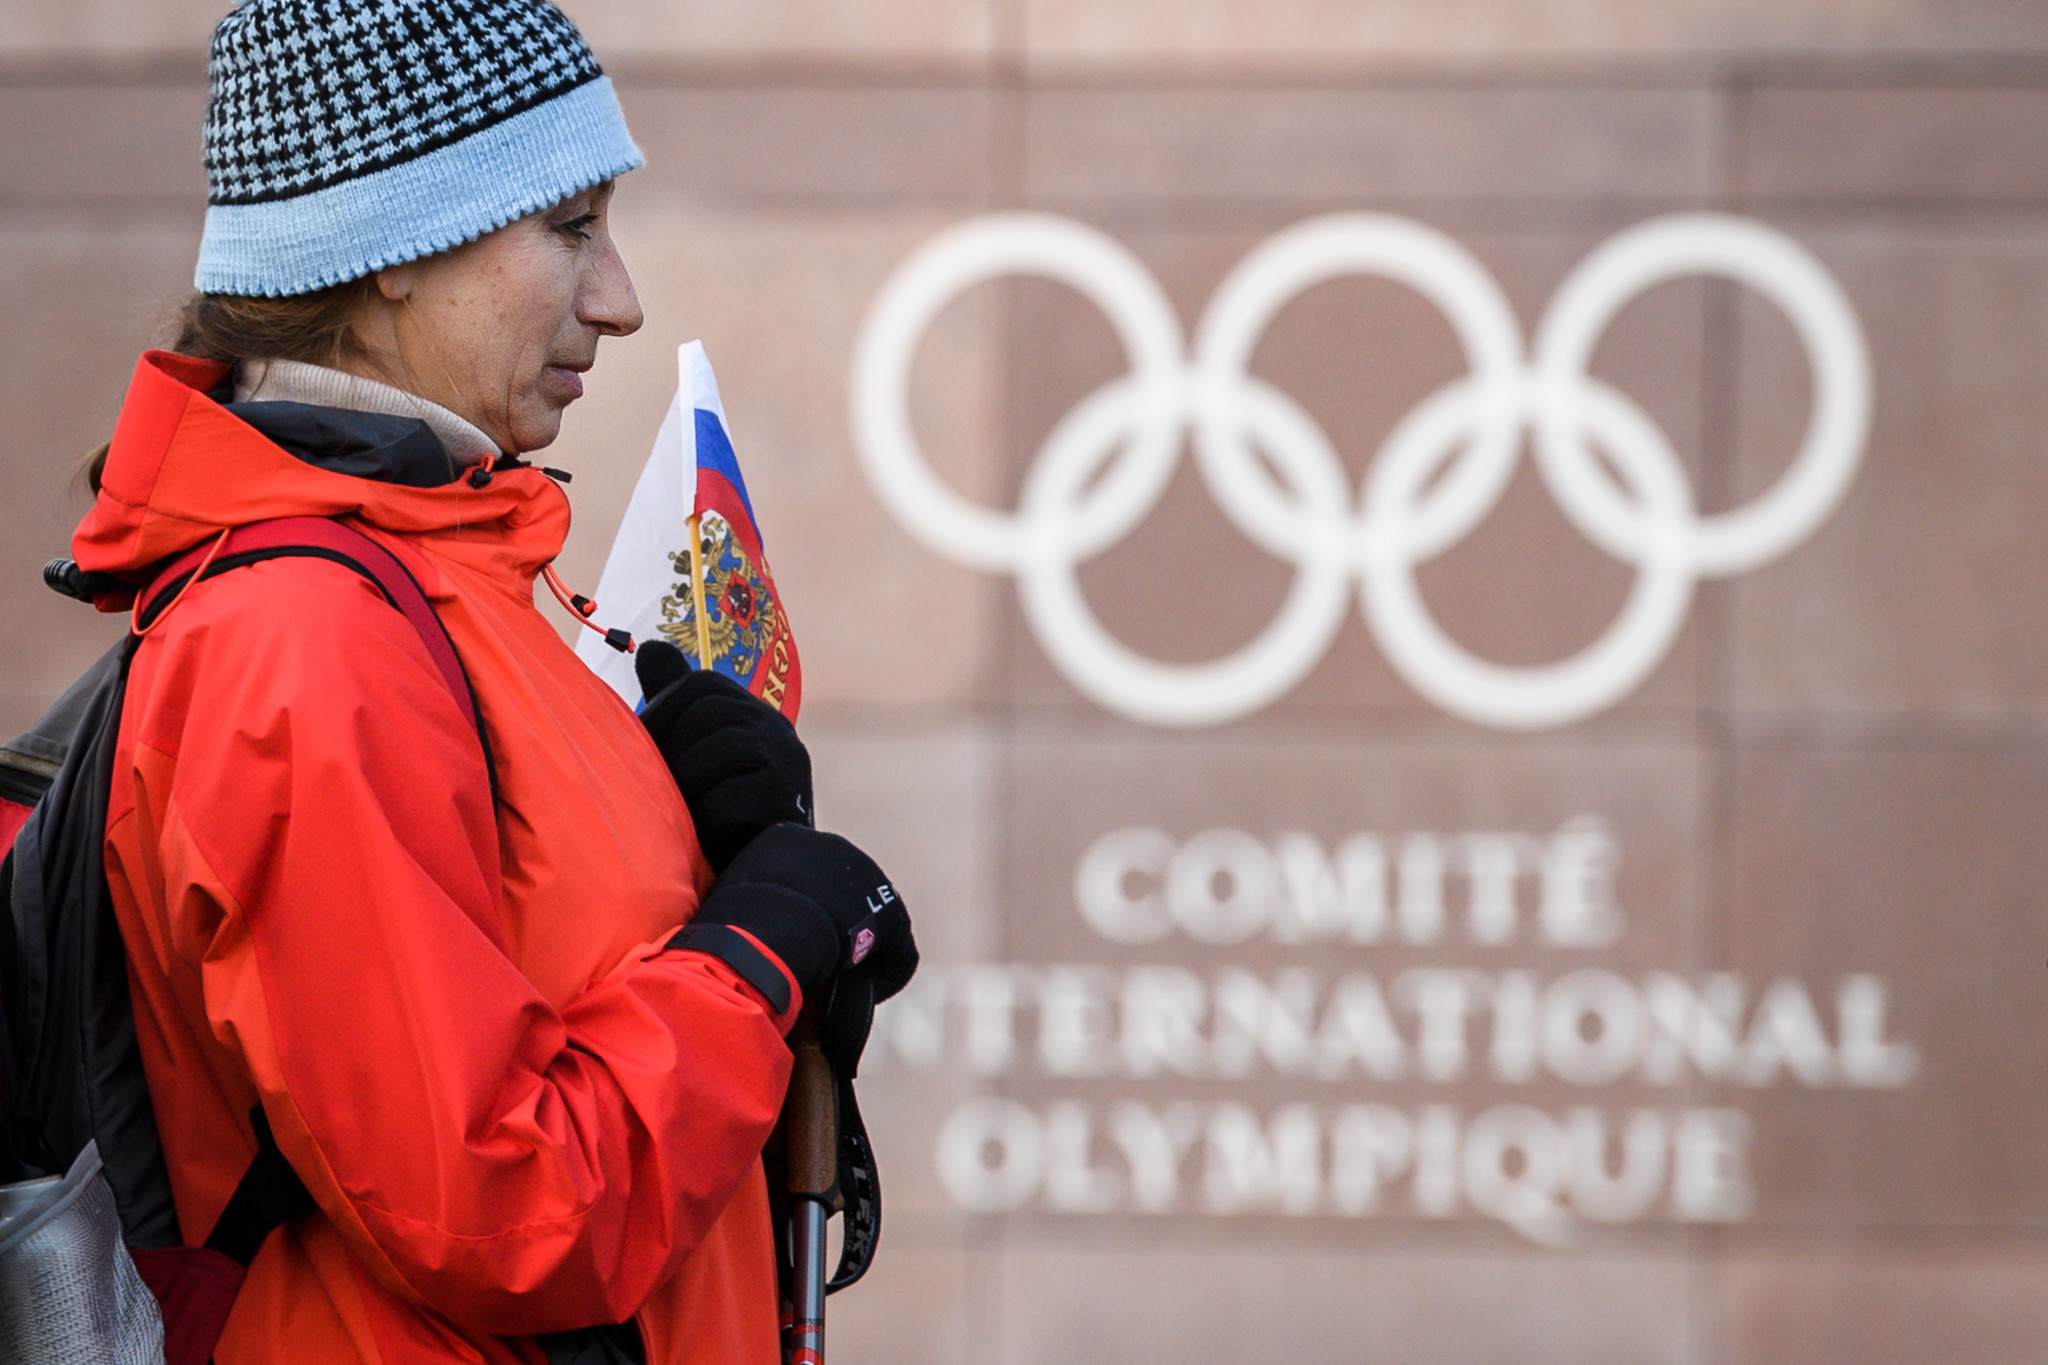 Russian athletes will head for the Court of Arbitration for Sport after a dark day for the country in Lausanne ©Getty Images